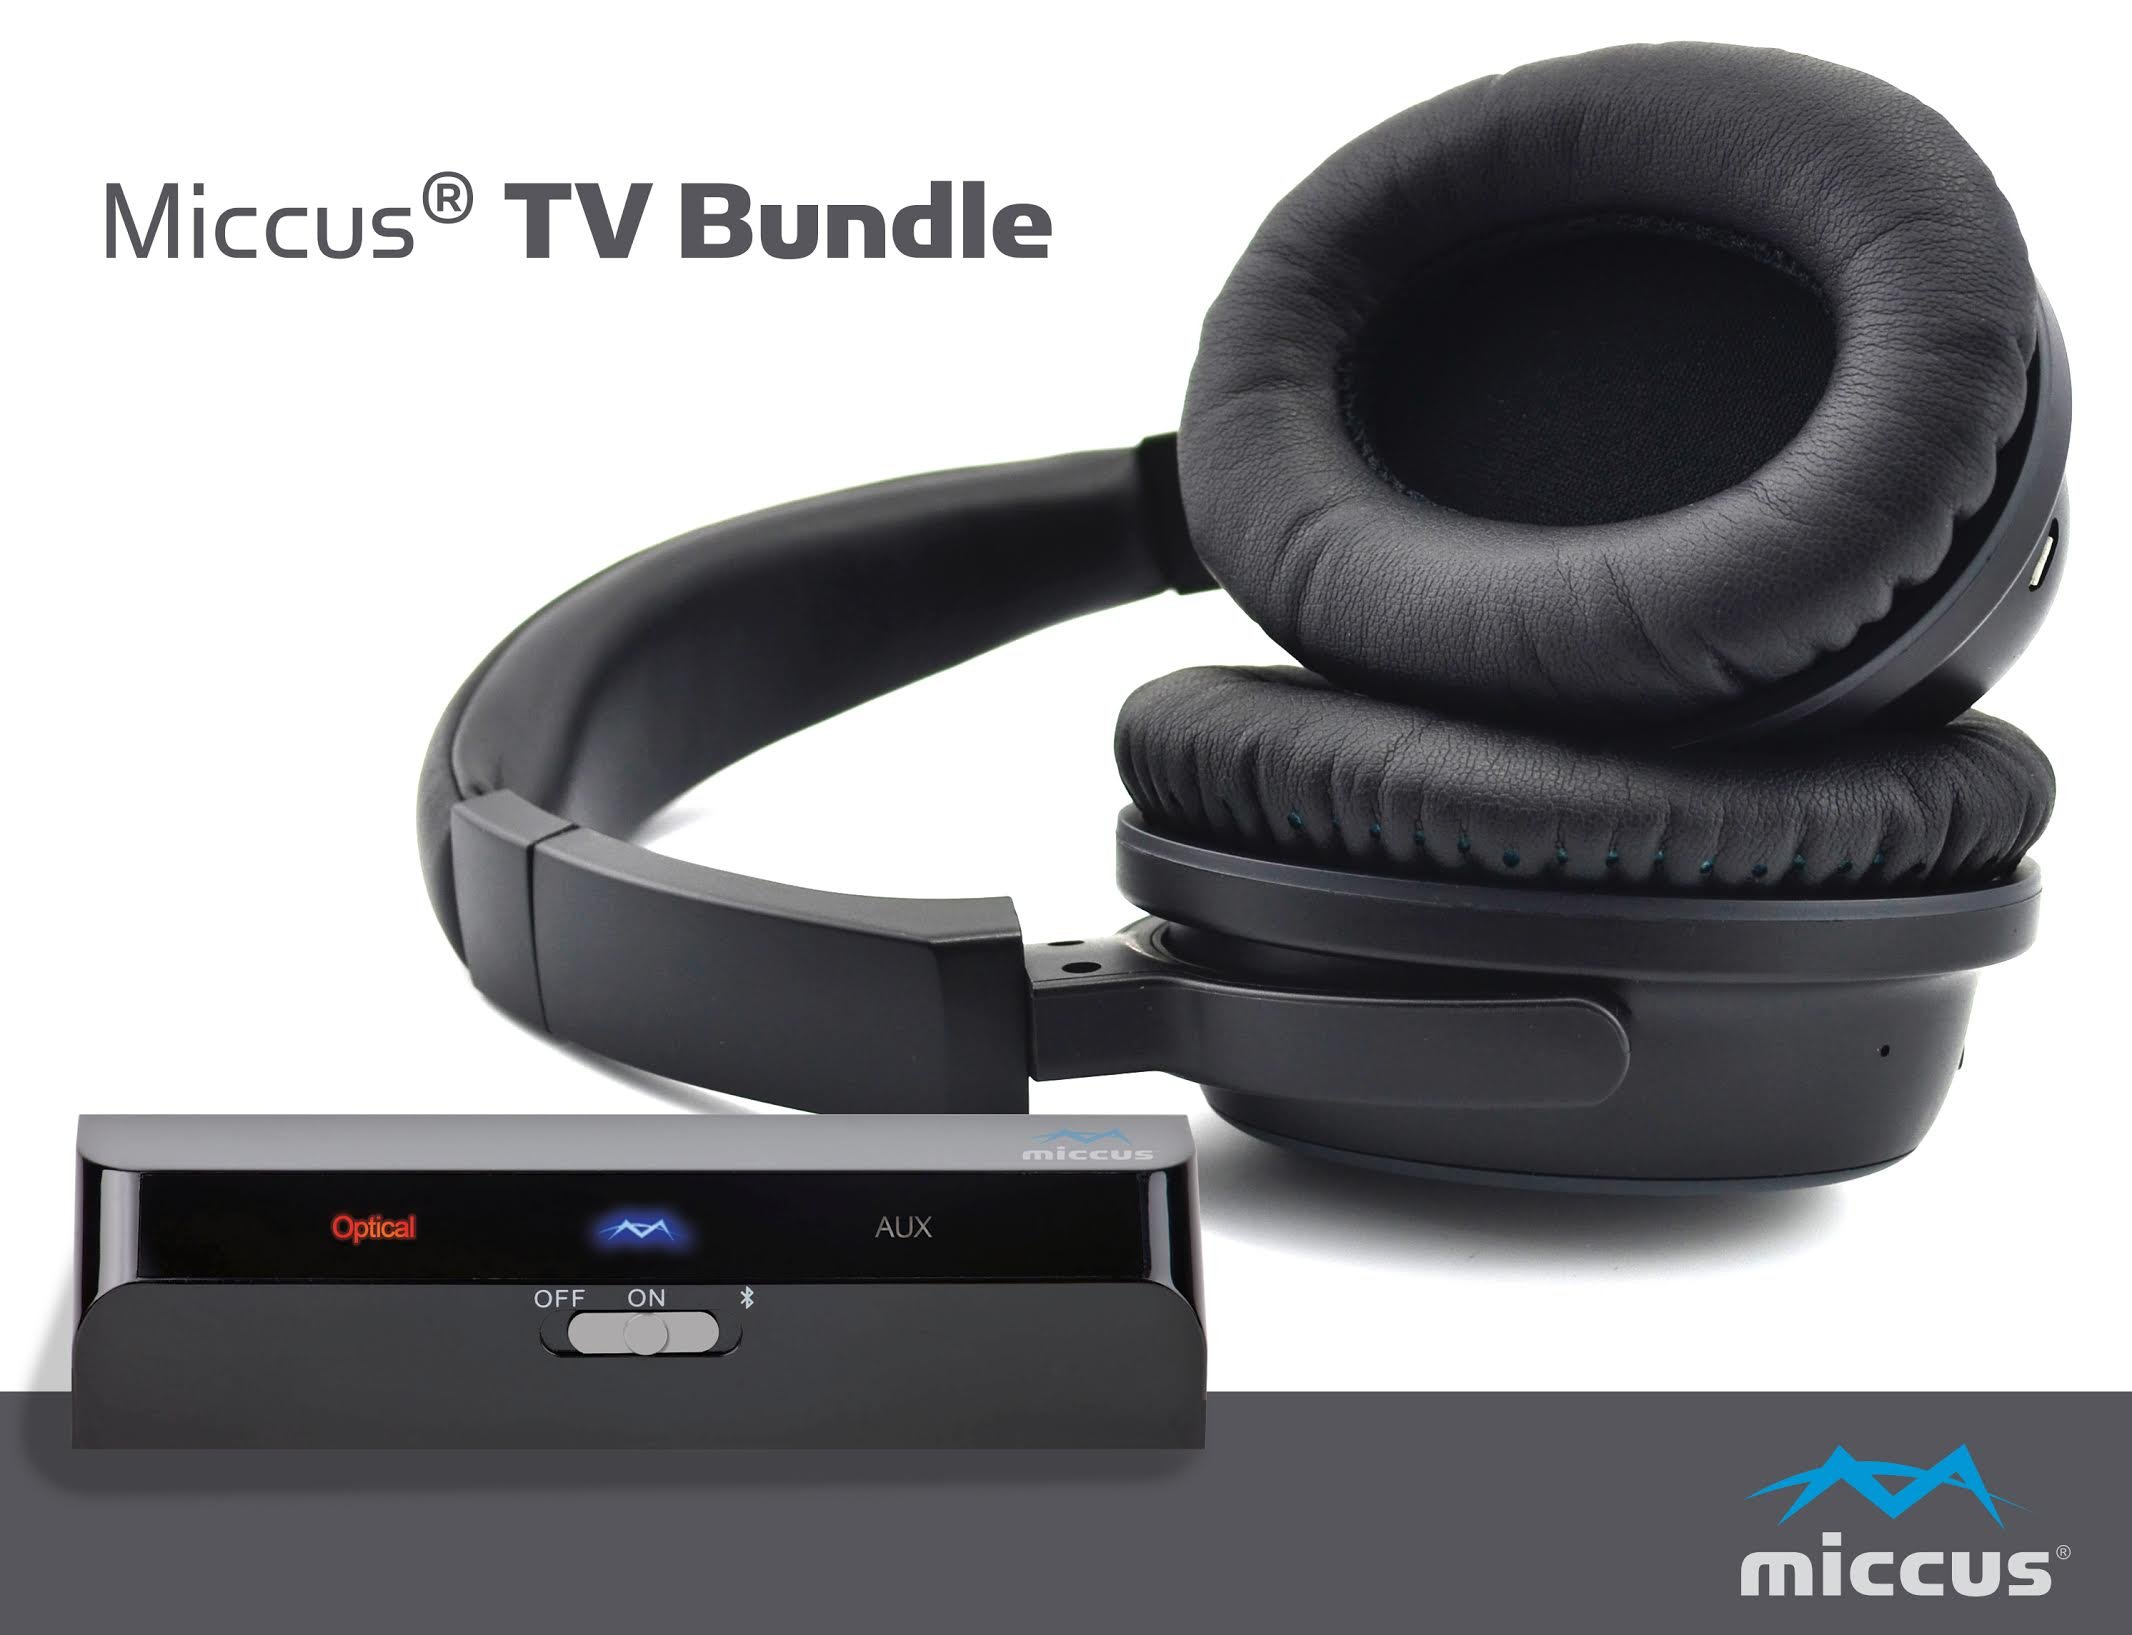 Wireless Headphones for TV with Optical Bluetooth 4.1 Transmitter System, Listen to Your TV in HD with No Audio Delay, Paired and Ready to Use, aptX Low Latency premium sound hard of hearing - Miccus by Miccus, Inc.